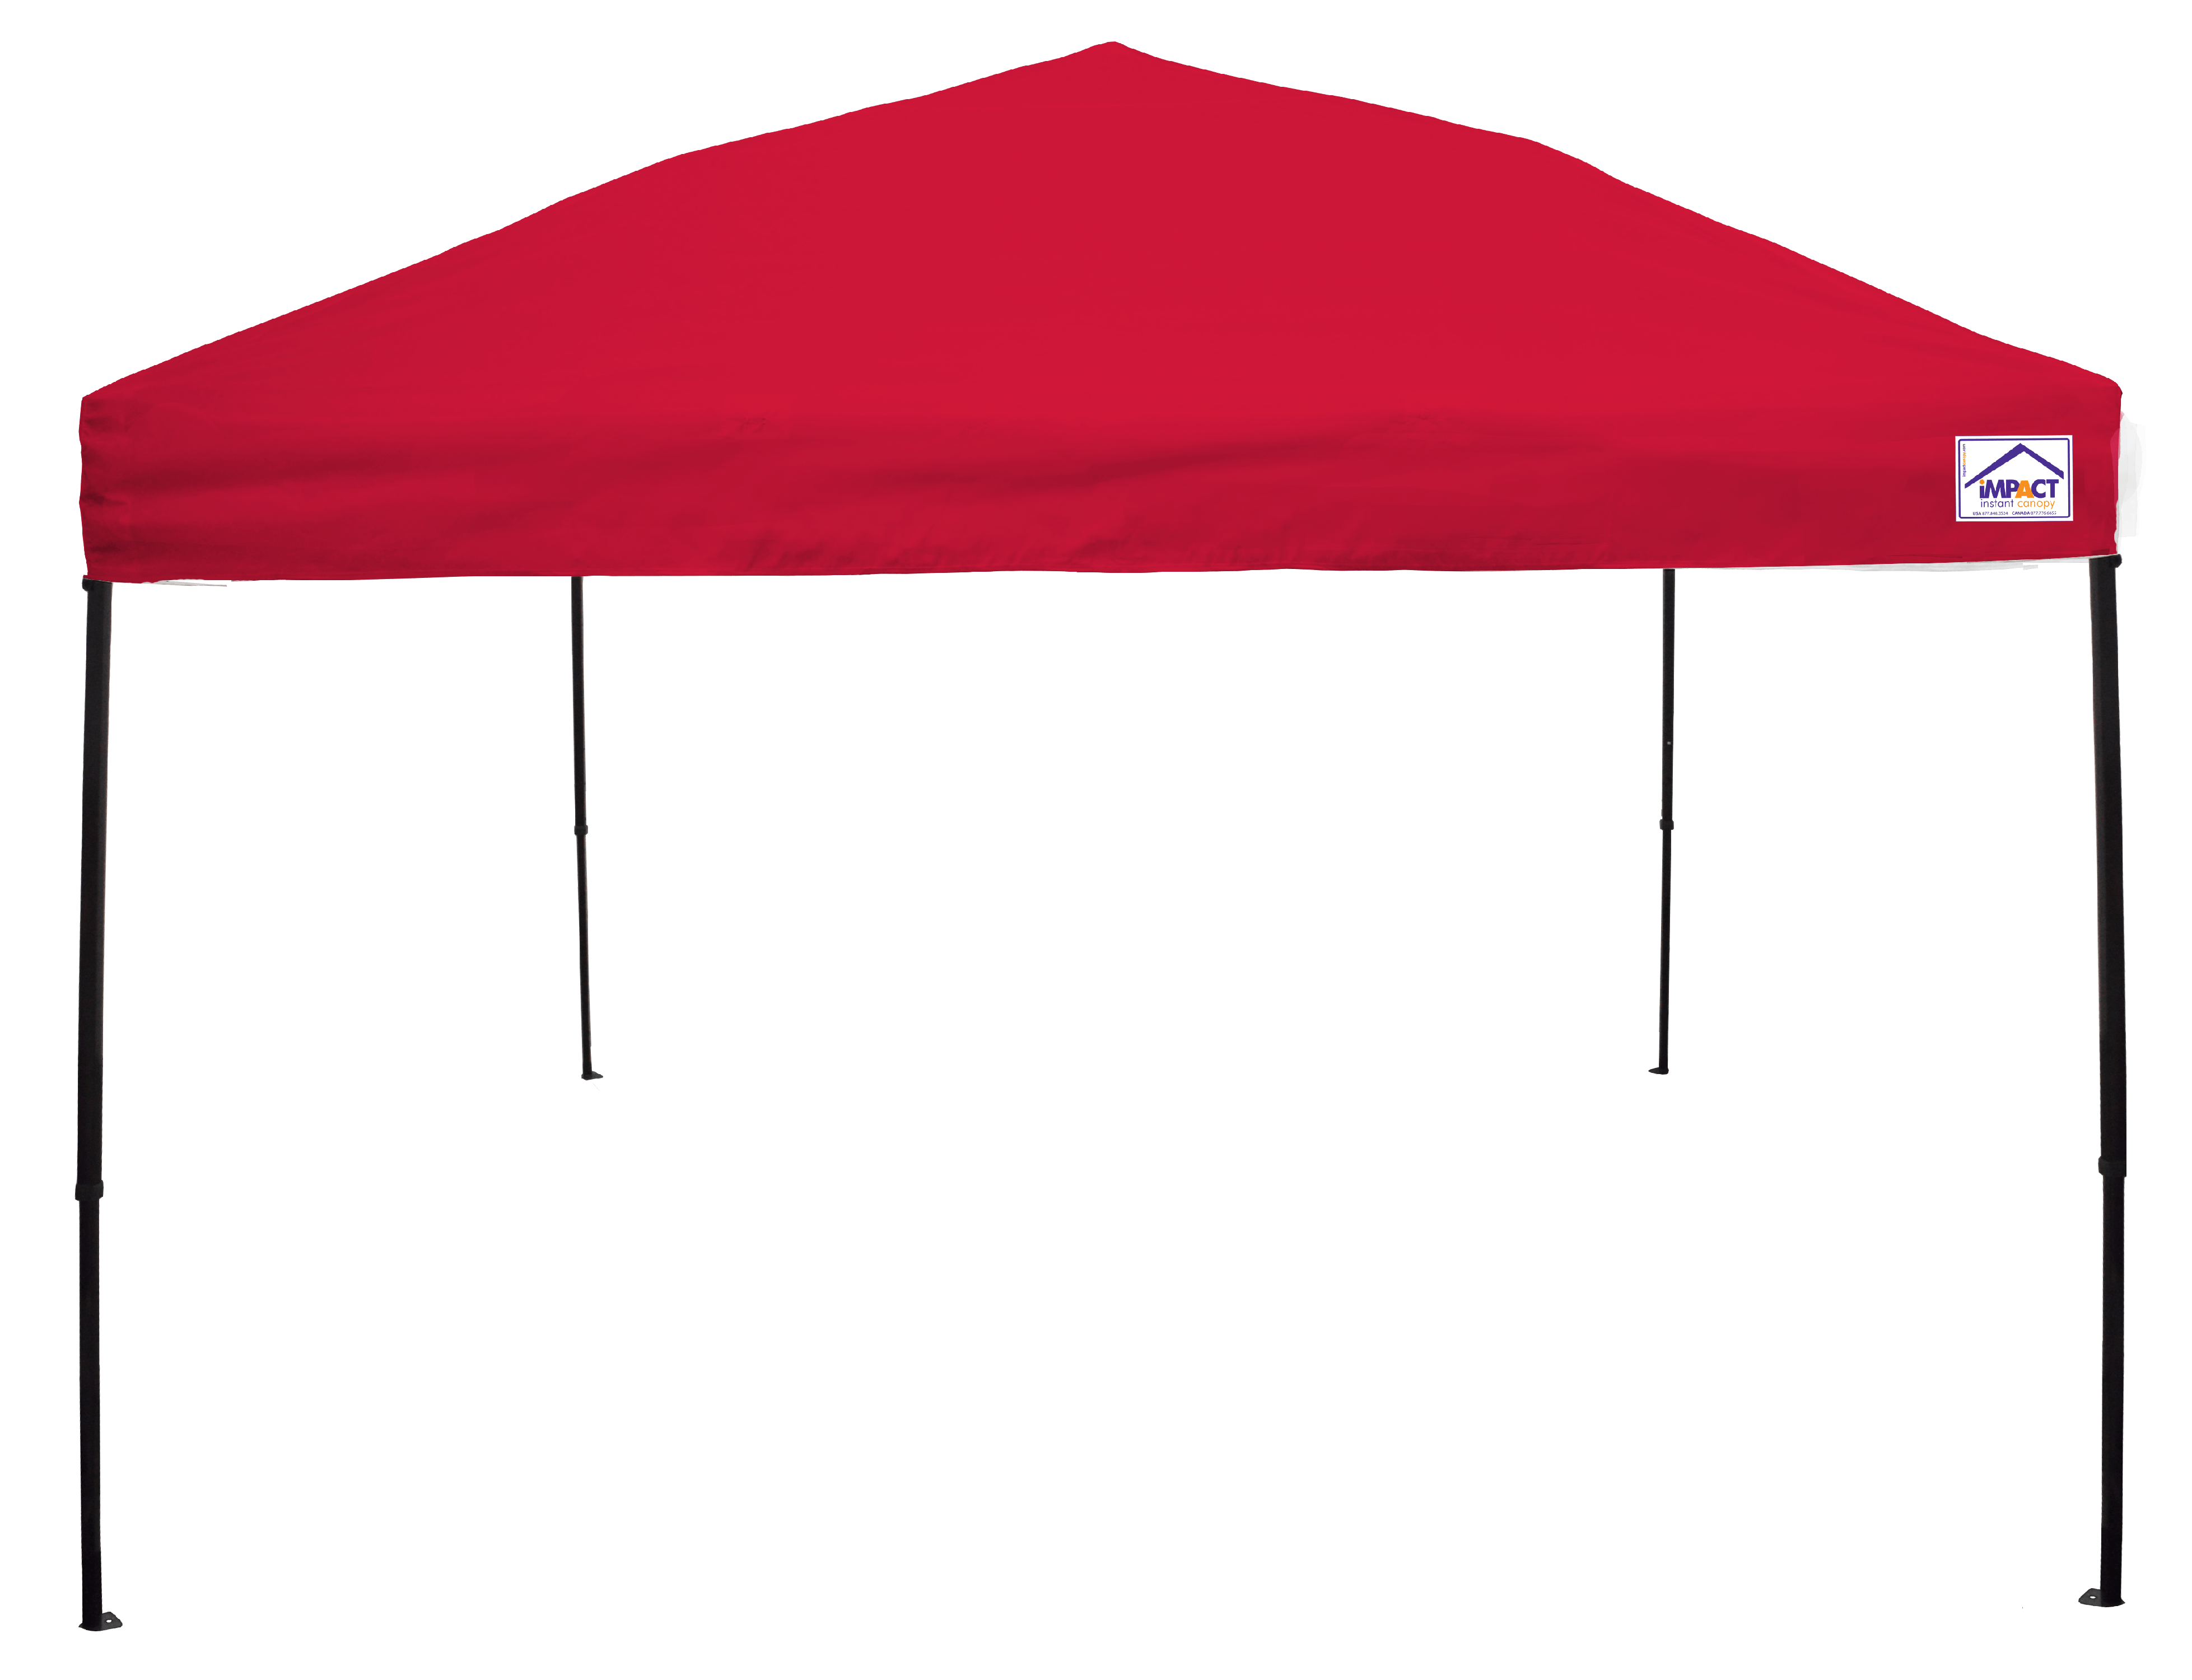 Head Way Gazebo Top Red 10 x 10 Instant Pop Up Canopy Tent  sc 1 st  Walmart & 10 X 10 Tents